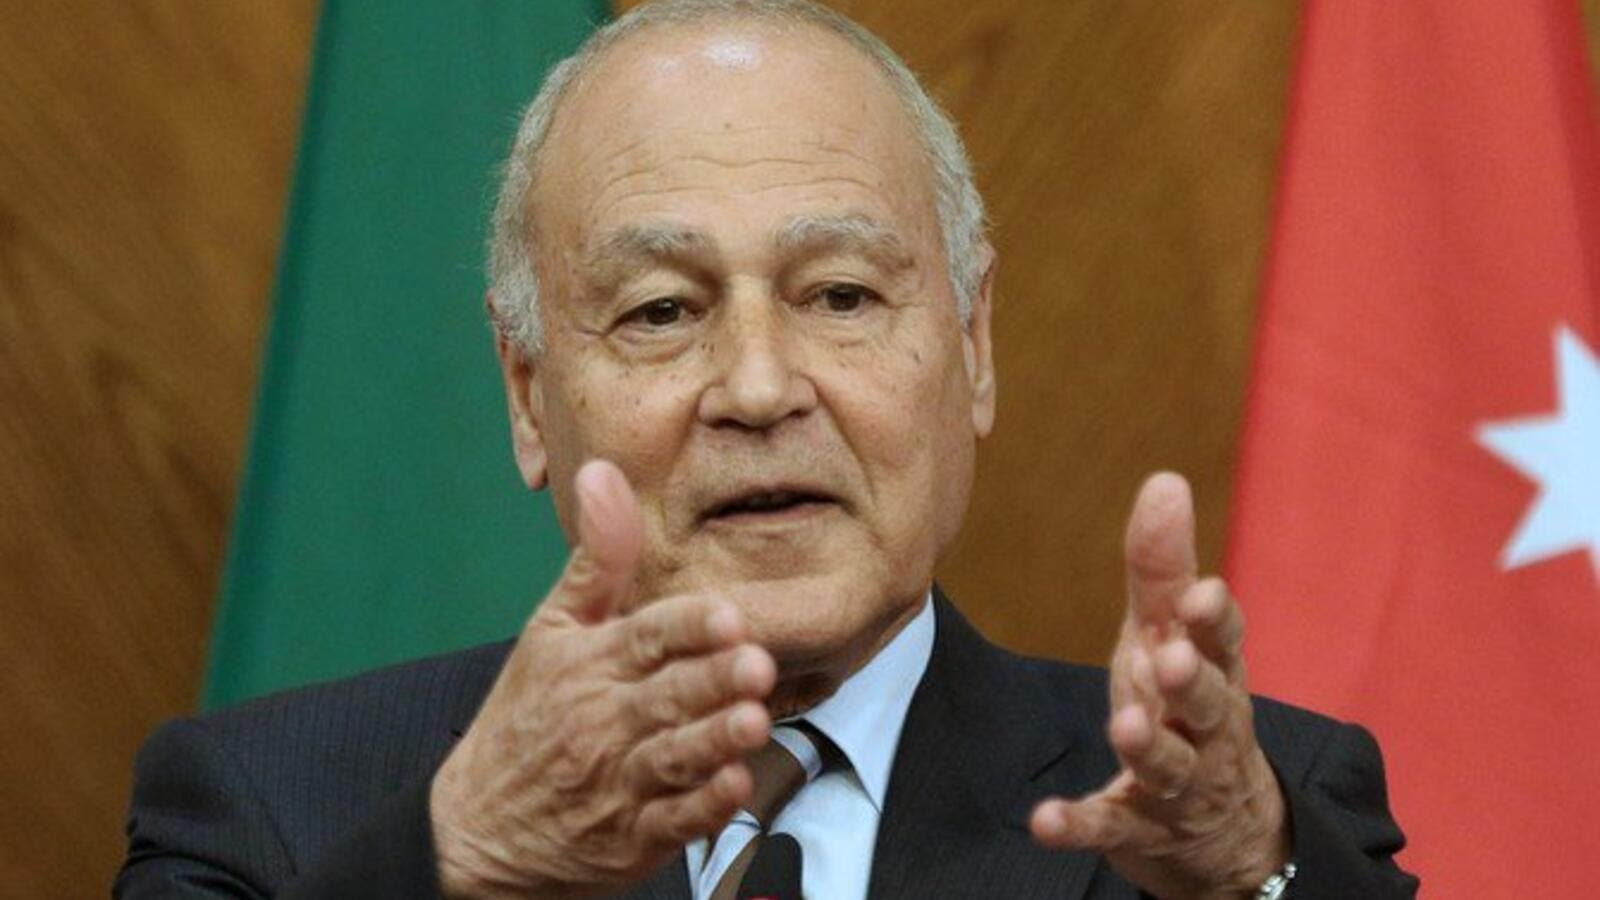 Arab League Secretary-General Ahmed Aboul Gheit gestures during a joint conference. (File/AFP)